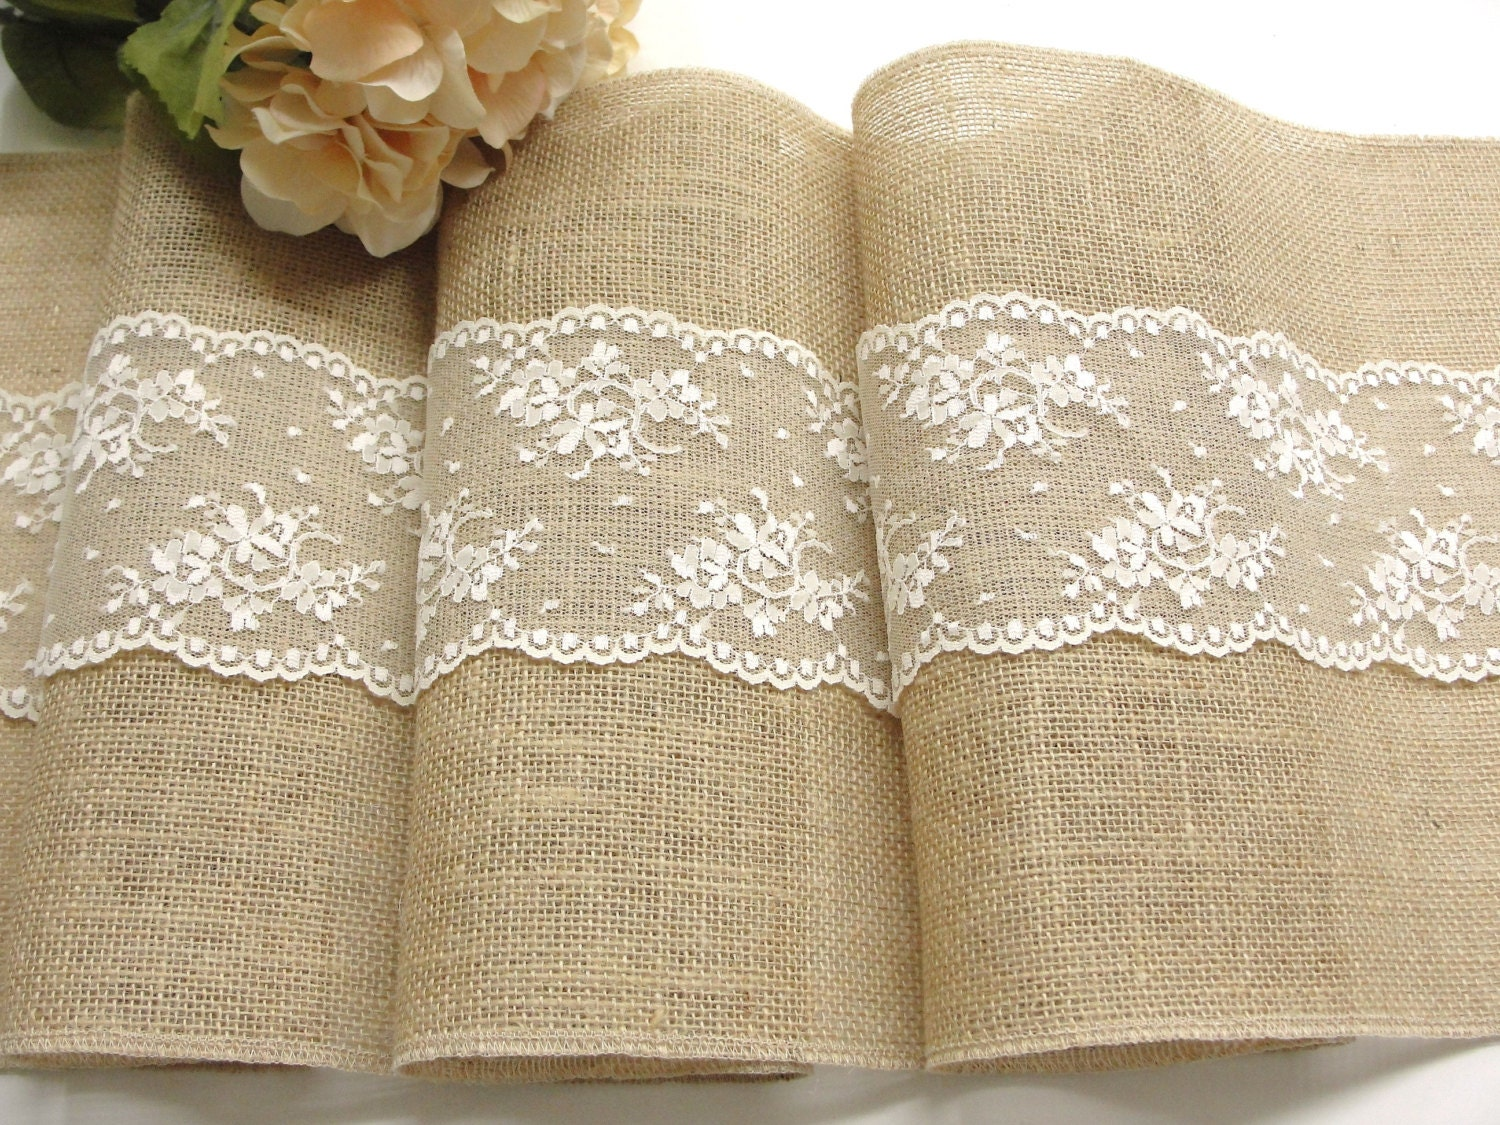 Burlap Table Runner With Dusty Hay Country Lace Table Runner